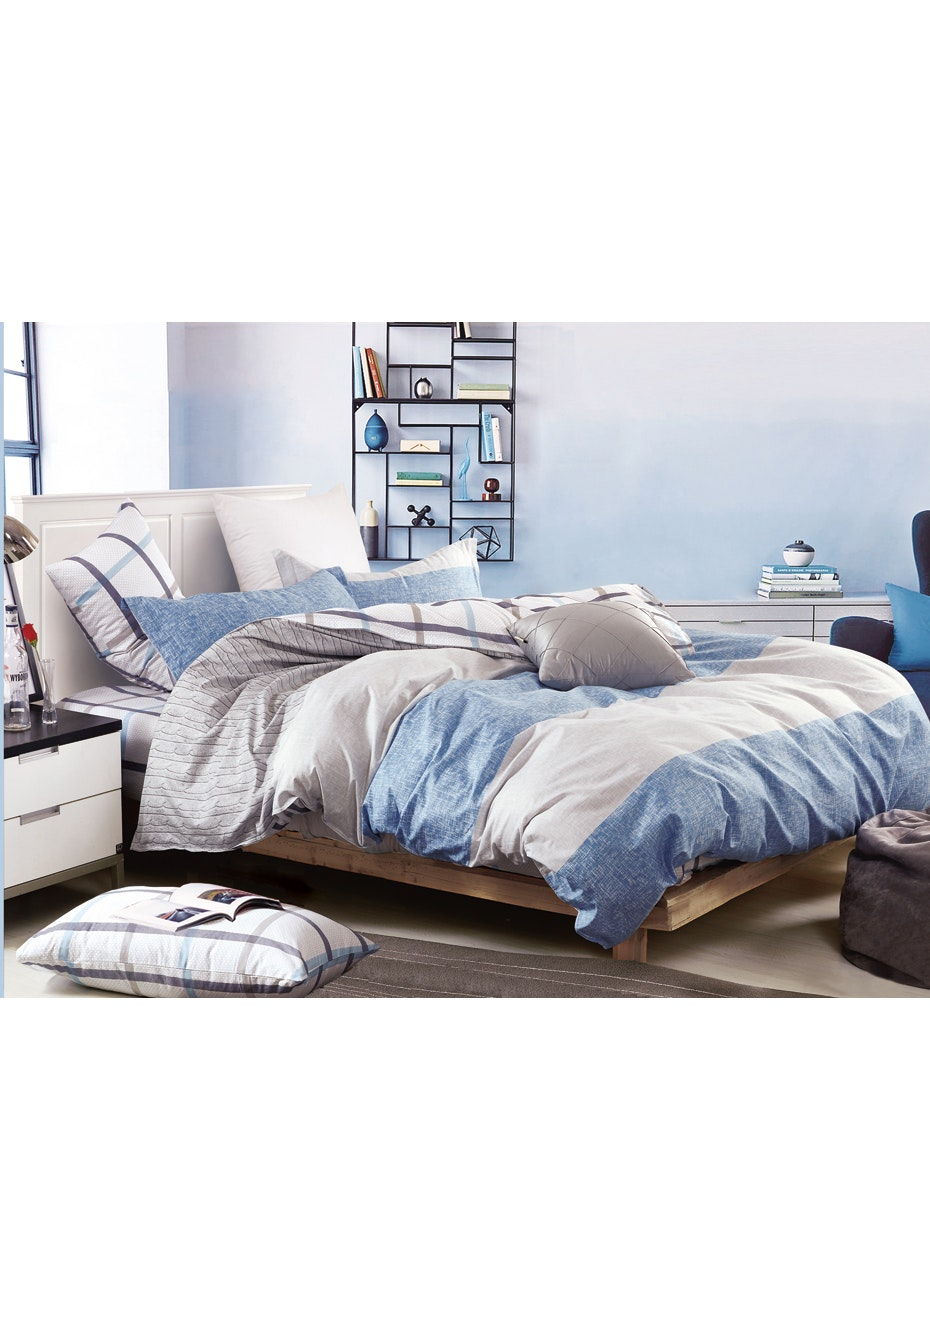 Cable Beach Quilt Cover Set - Reversible Design - 100% Cotton - King Bed